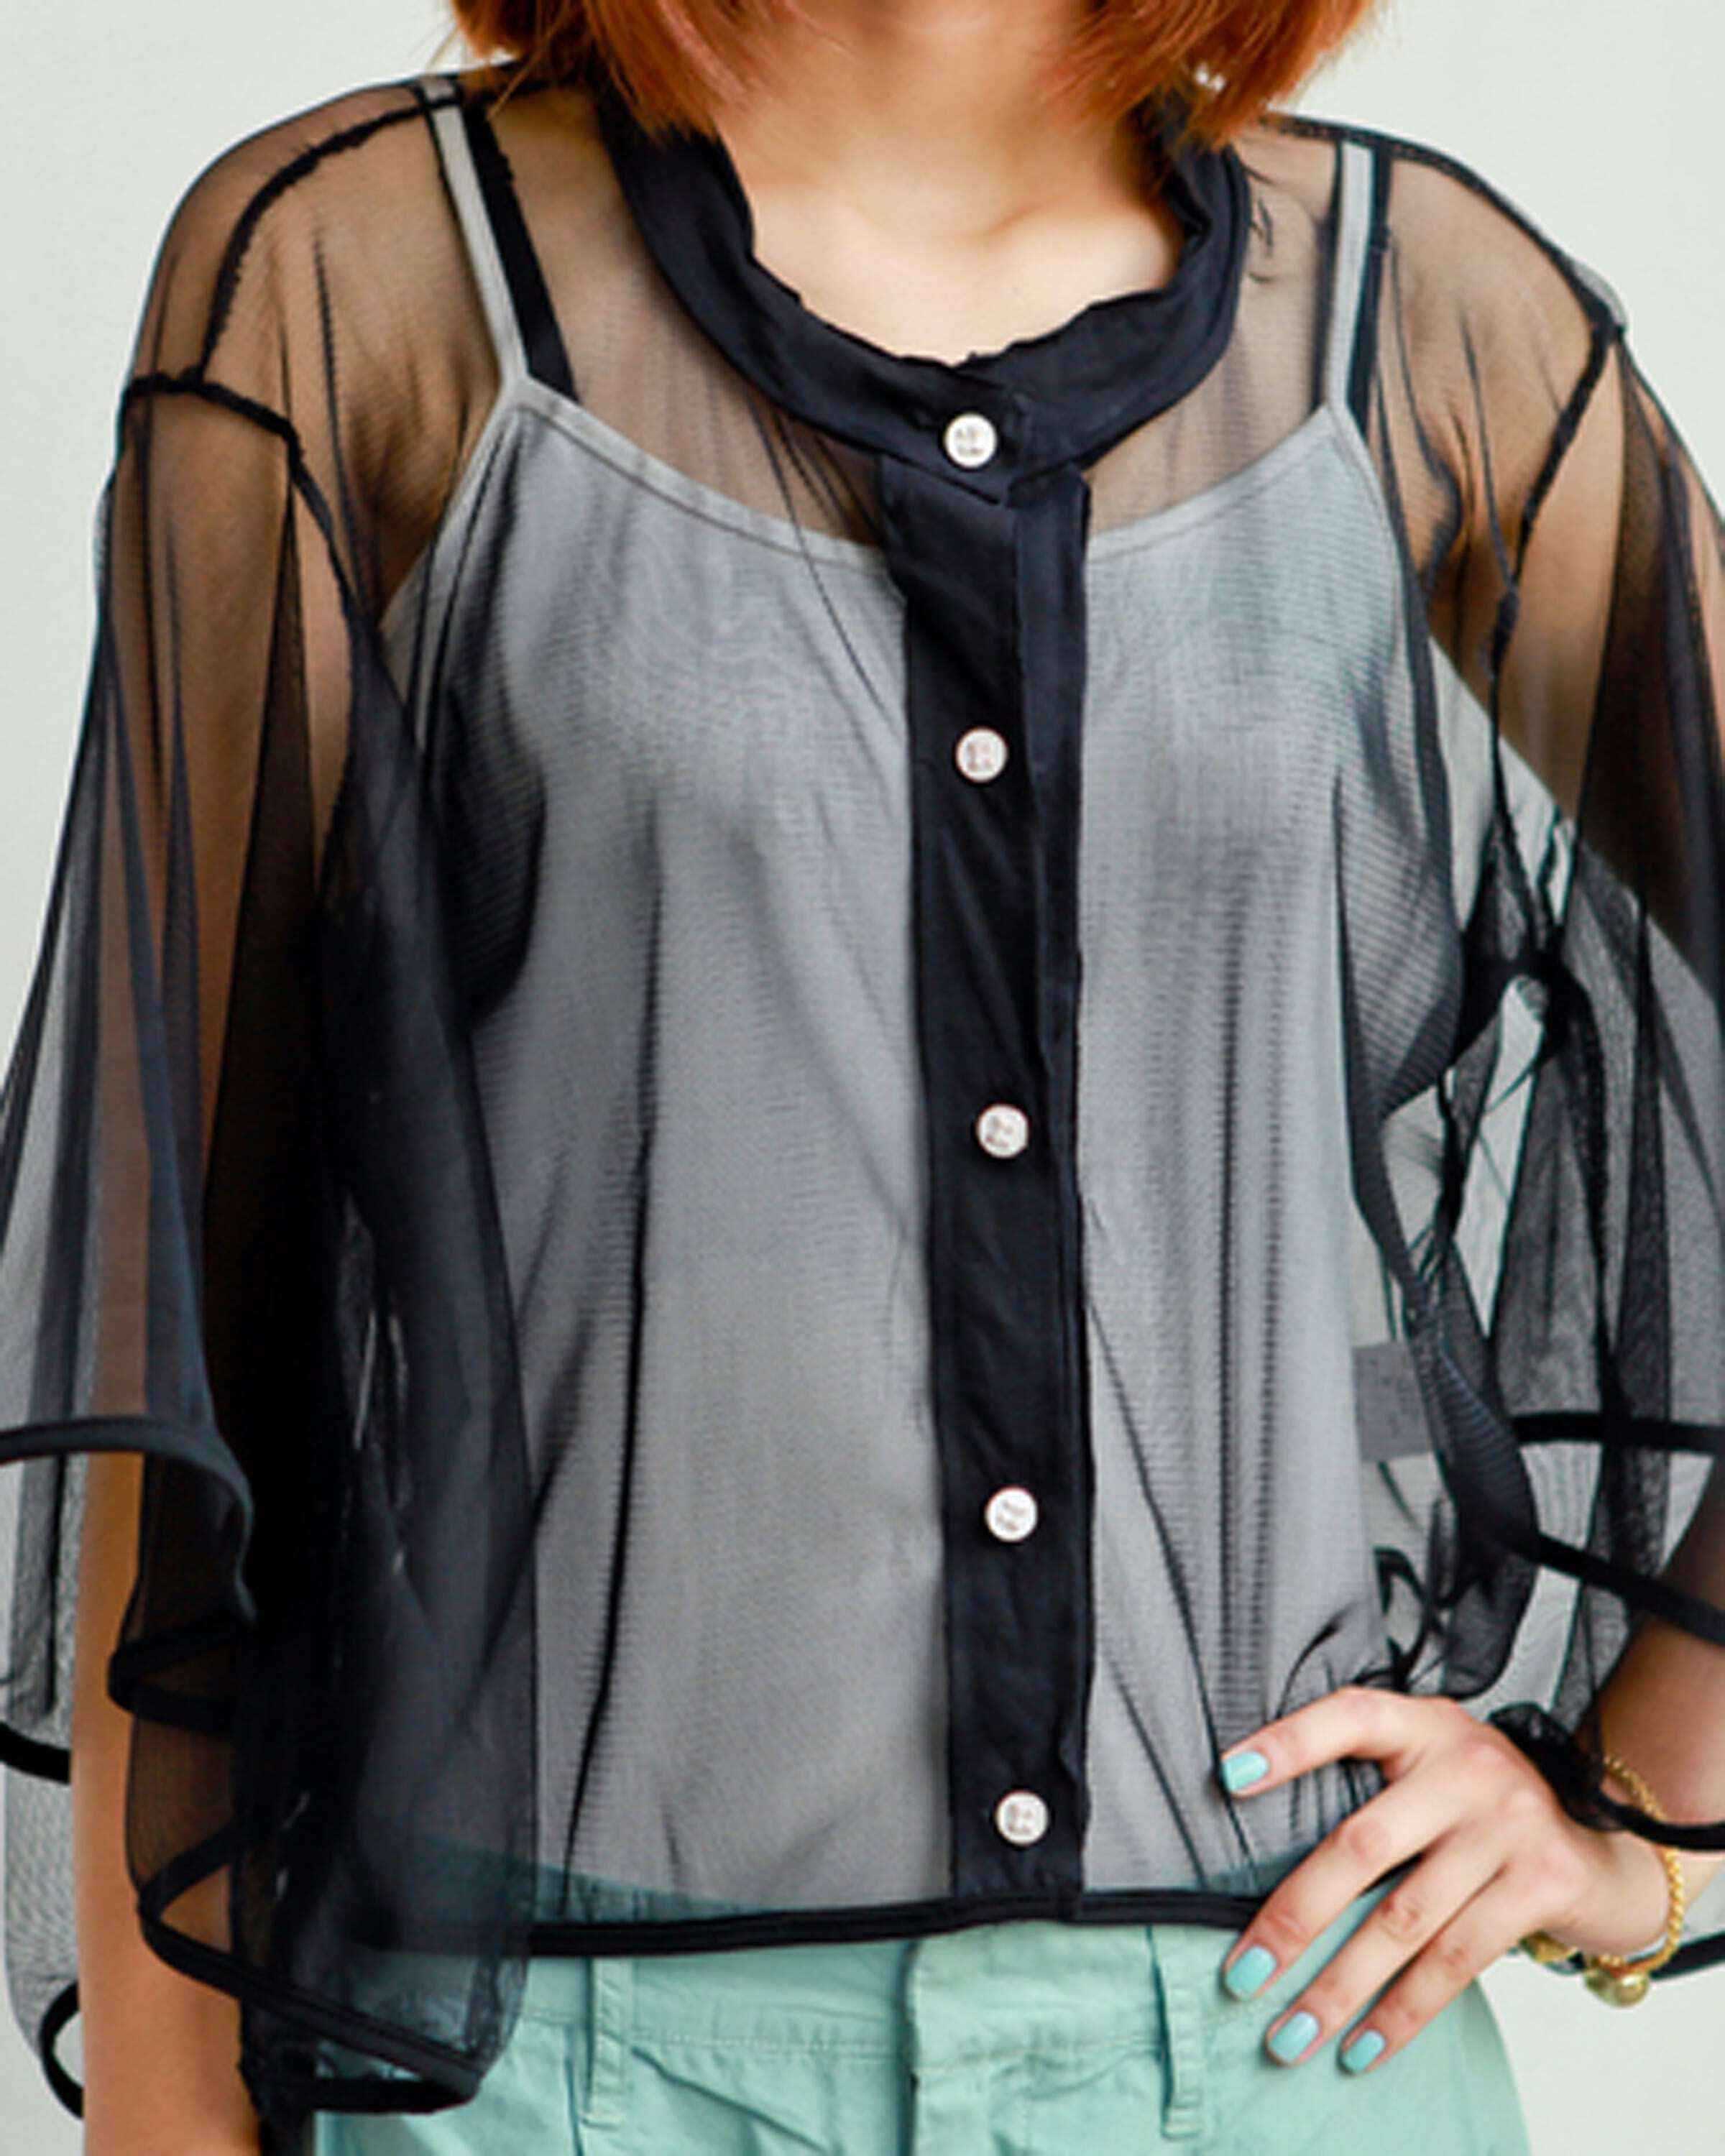 Black Three Quarter Length Flare Sleeve Transparent Shirt -SheIn ...